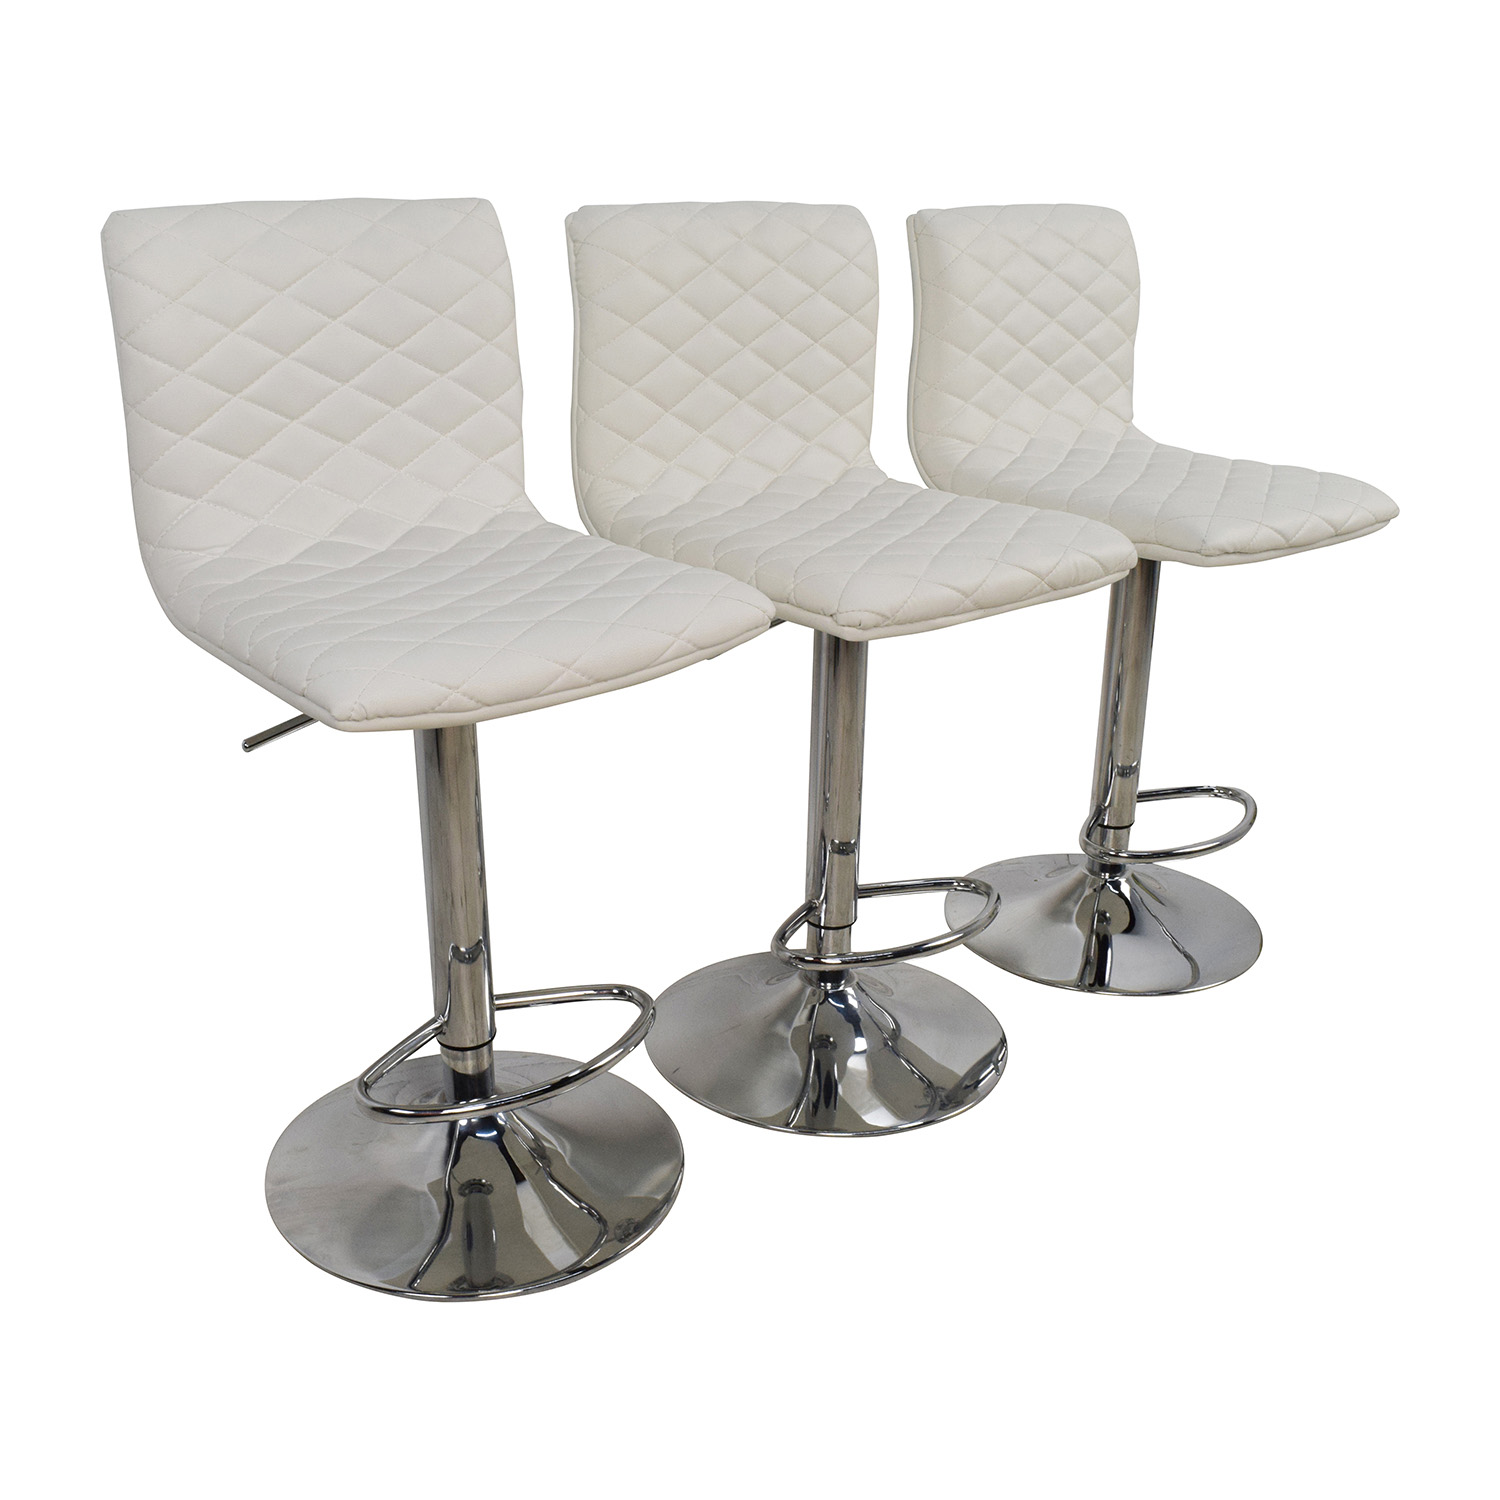 Bar Stool Chair 74 Off White Quilted Bar Stool Chairs Chairs